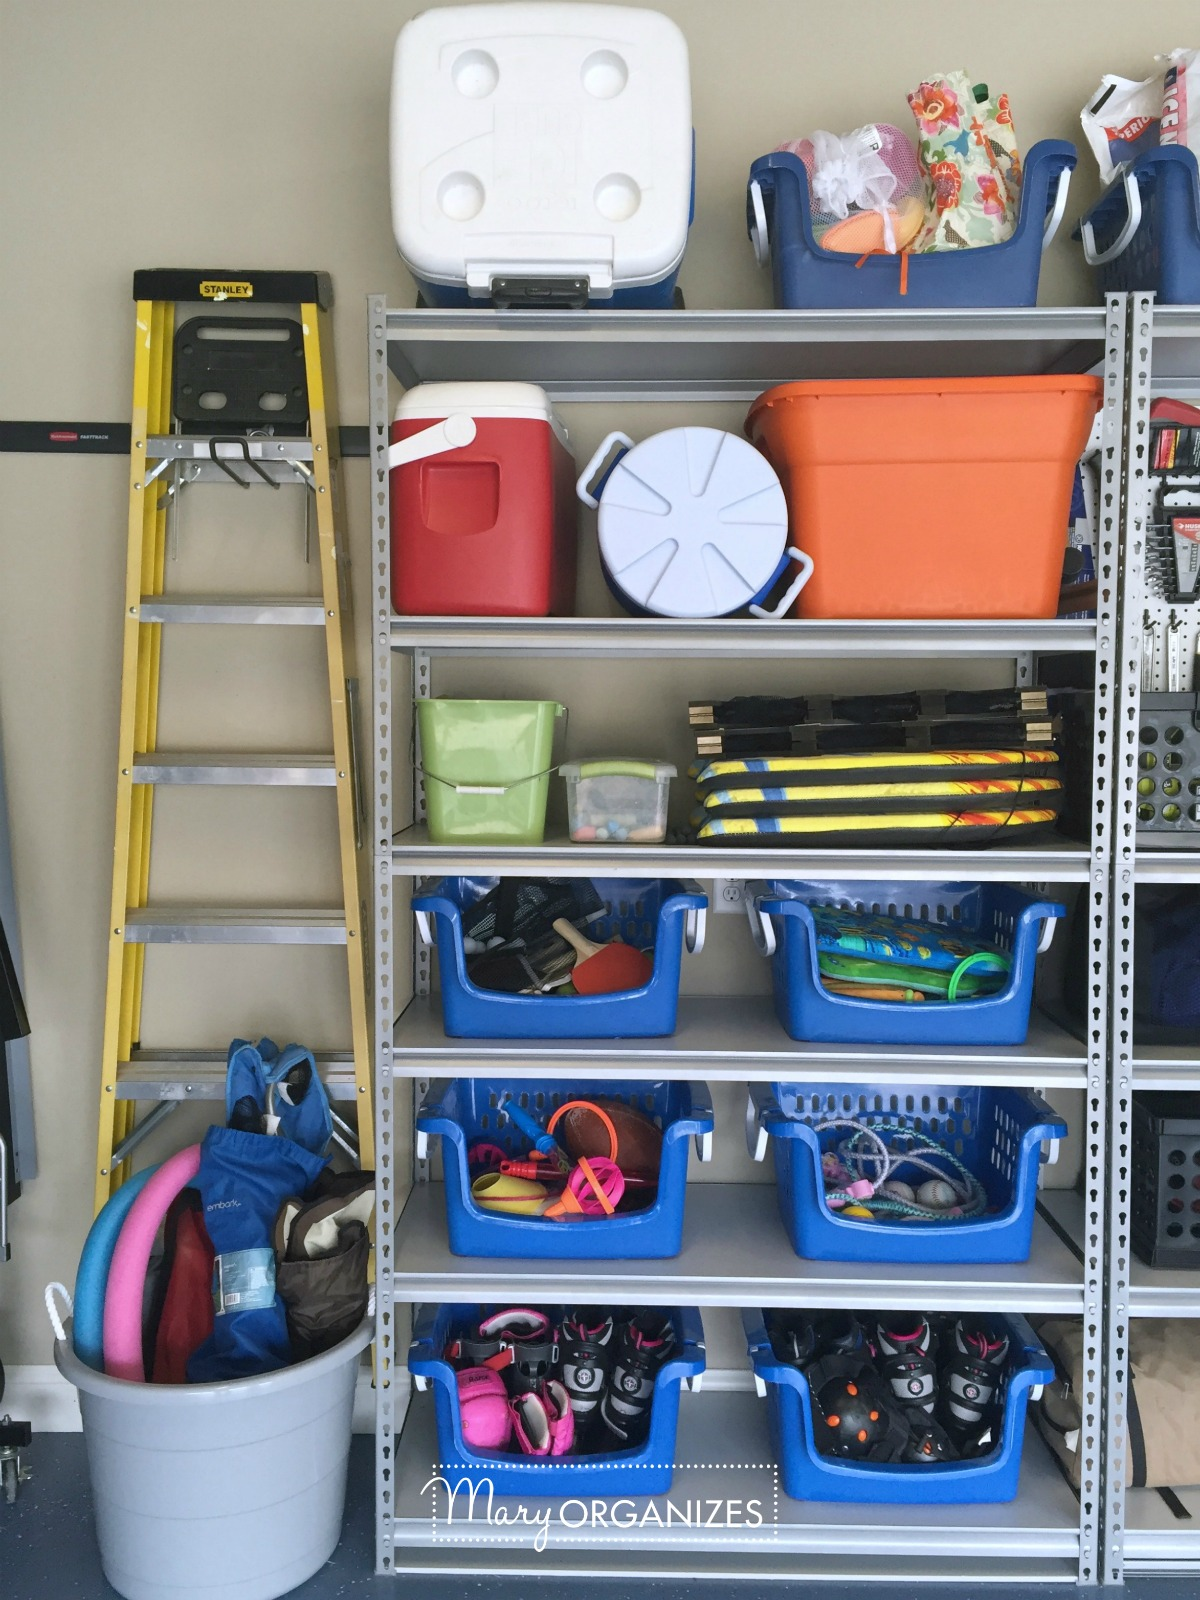 Pegboard Hack and Organizing Garage Shelves 6. Pegboard Hack   Organizing Garage Shelves   creatingmaryshome com